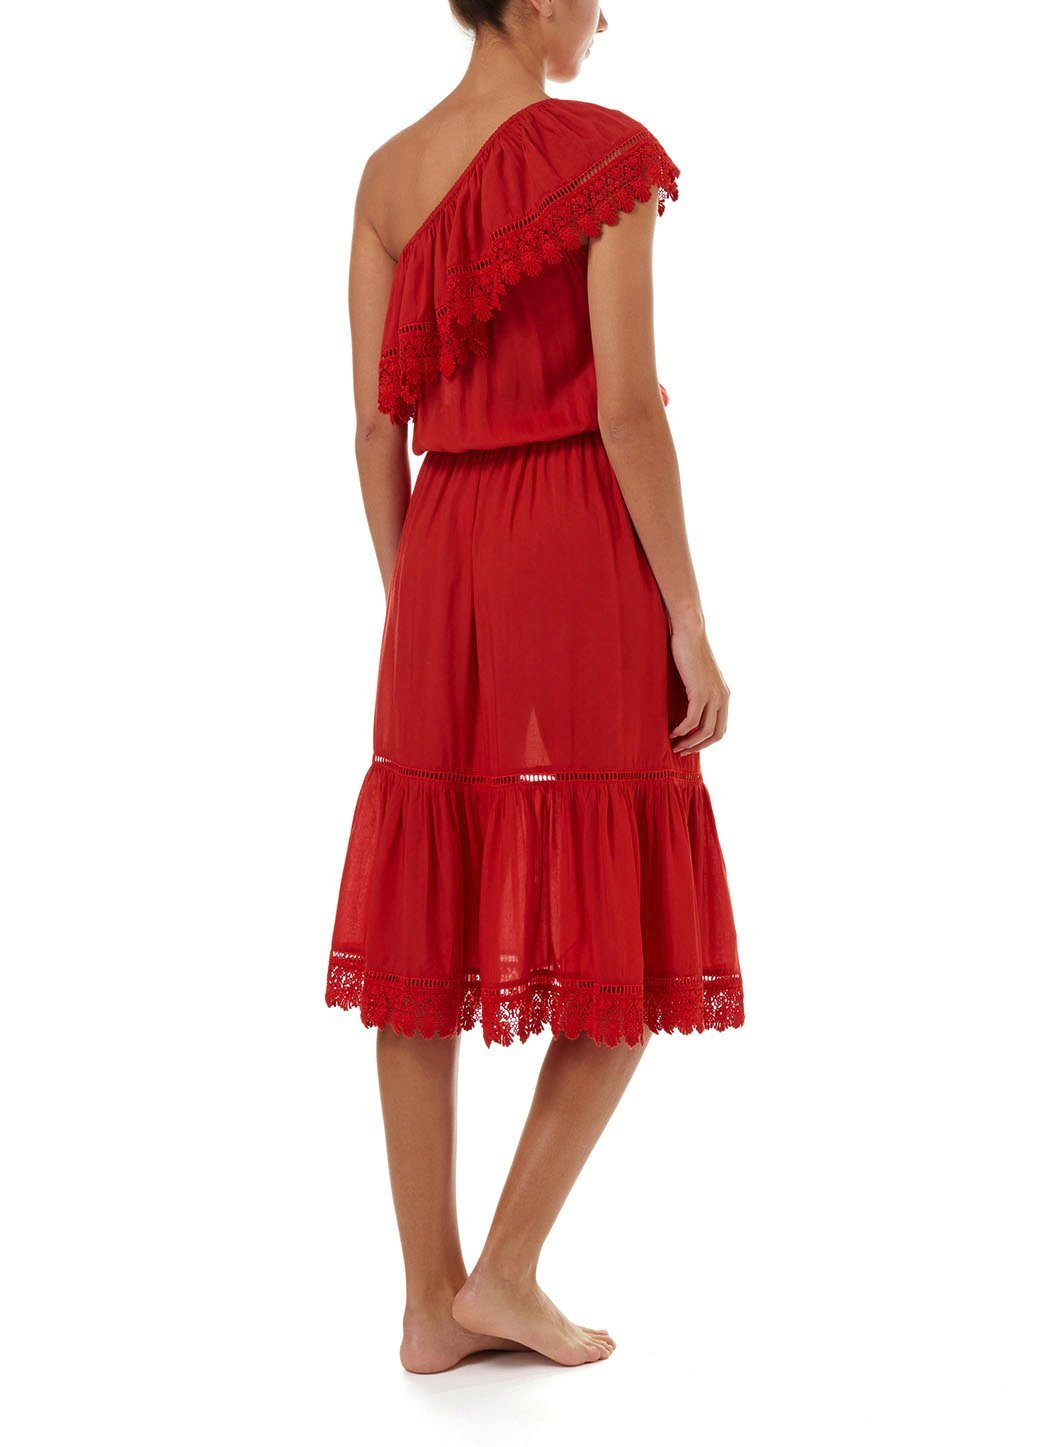 jo red oneshoulder embroidered frill midi dress 2019 B